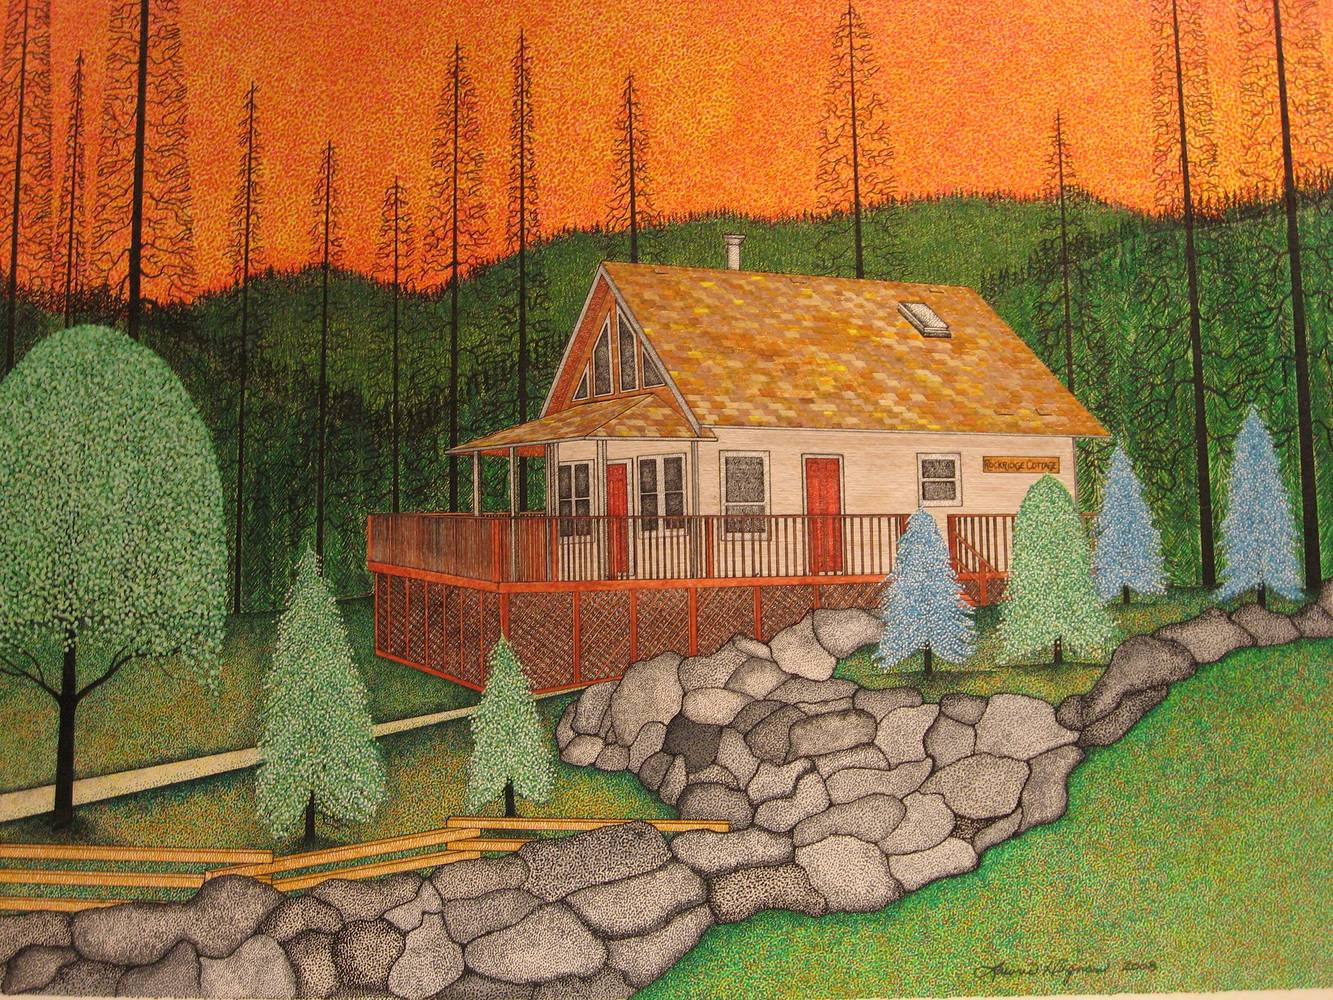 Drawing Don's Cottage by Lawrie  Dignan